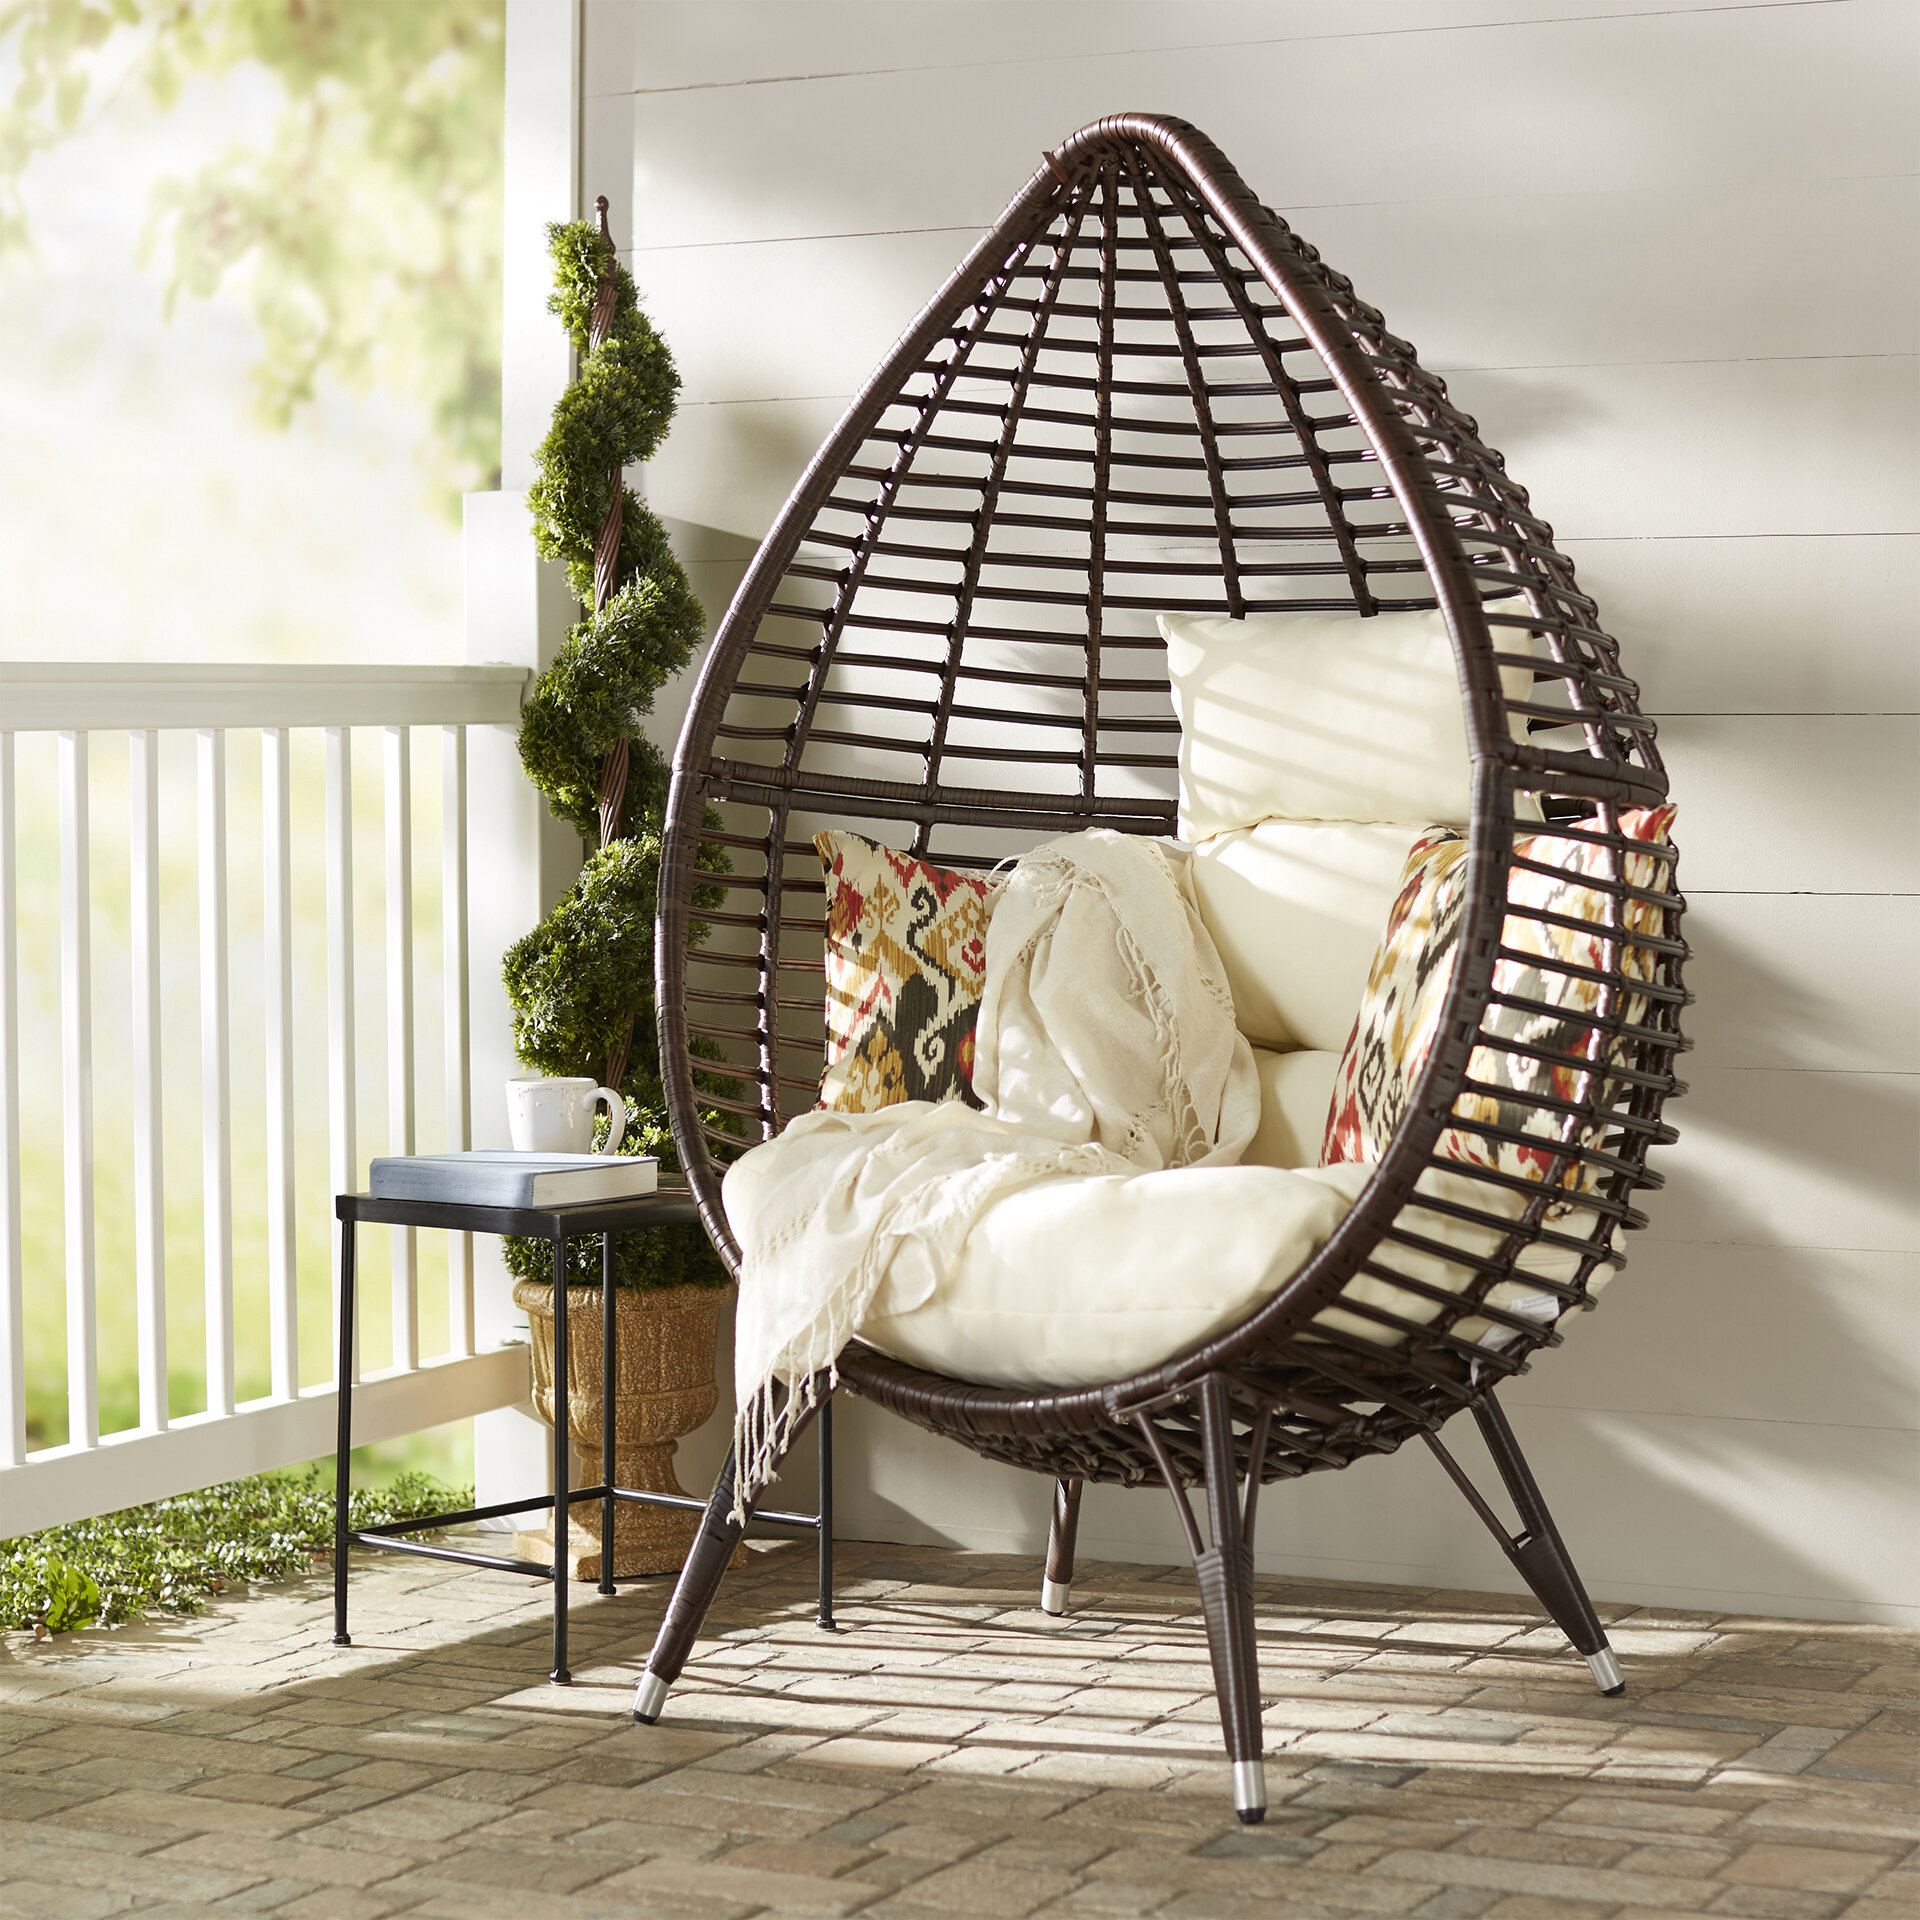 Marvelous Teardrop Patio Chair With Cushions Download Free Architecture Designs Grimeyleaguecom